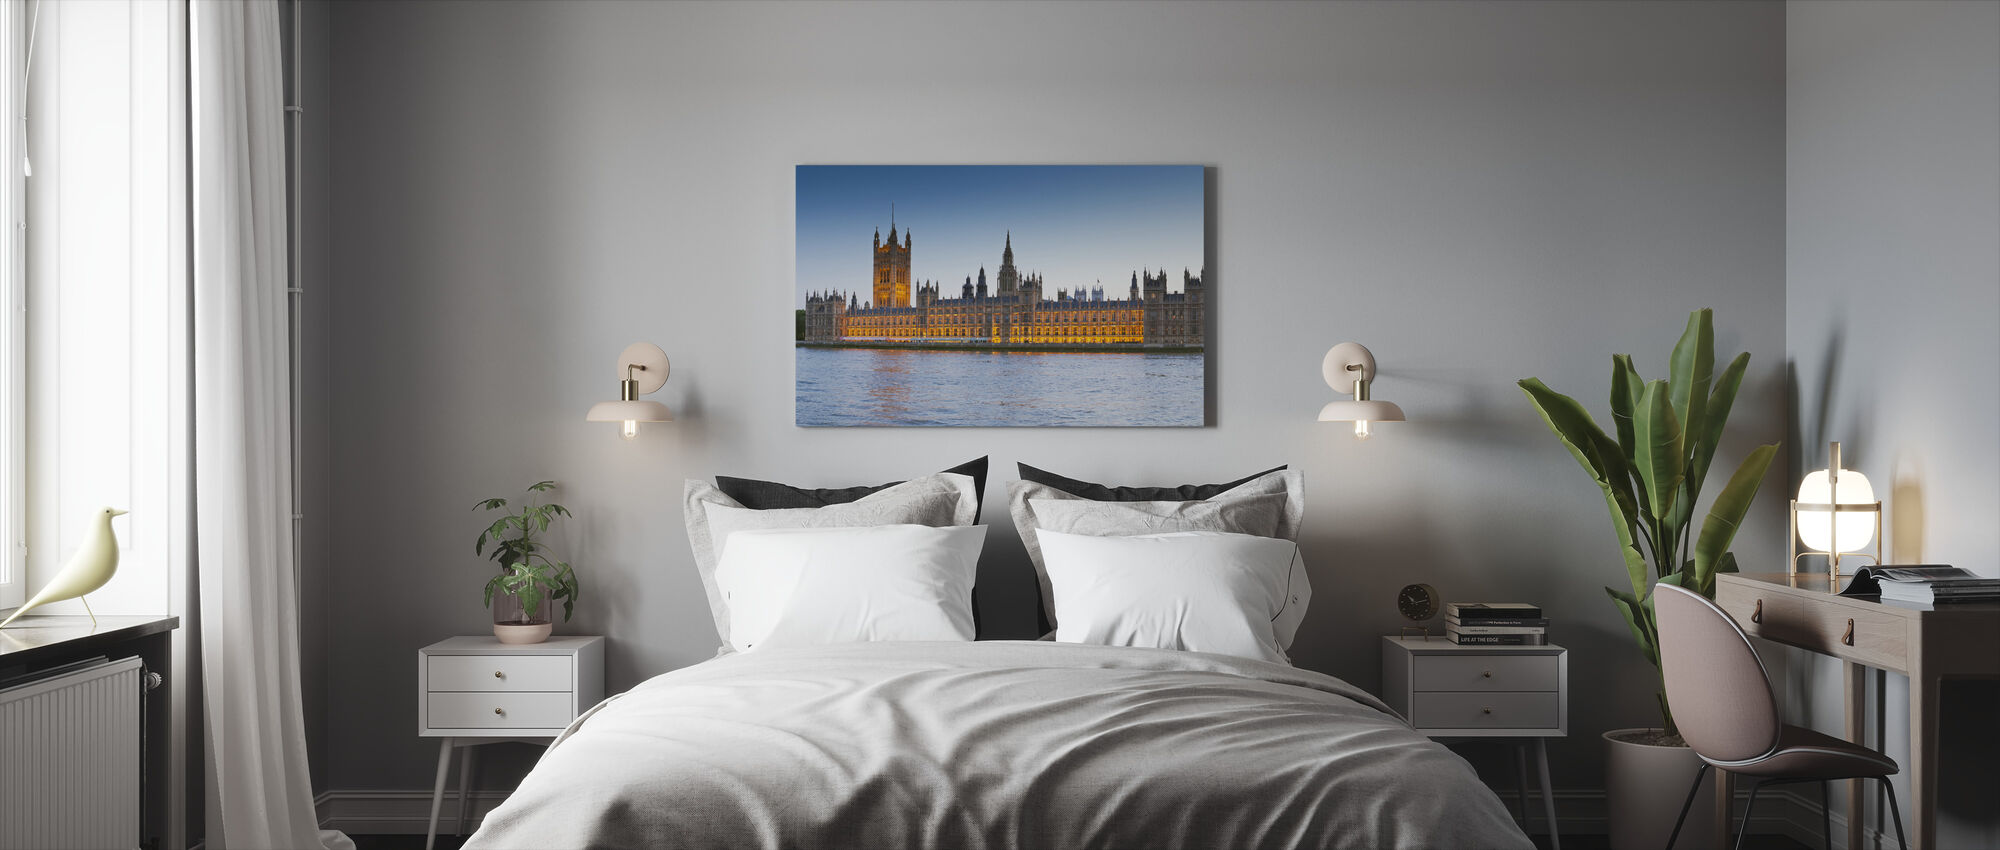 Big Ben and Houses of Parliament - Canvas print - Bedroom